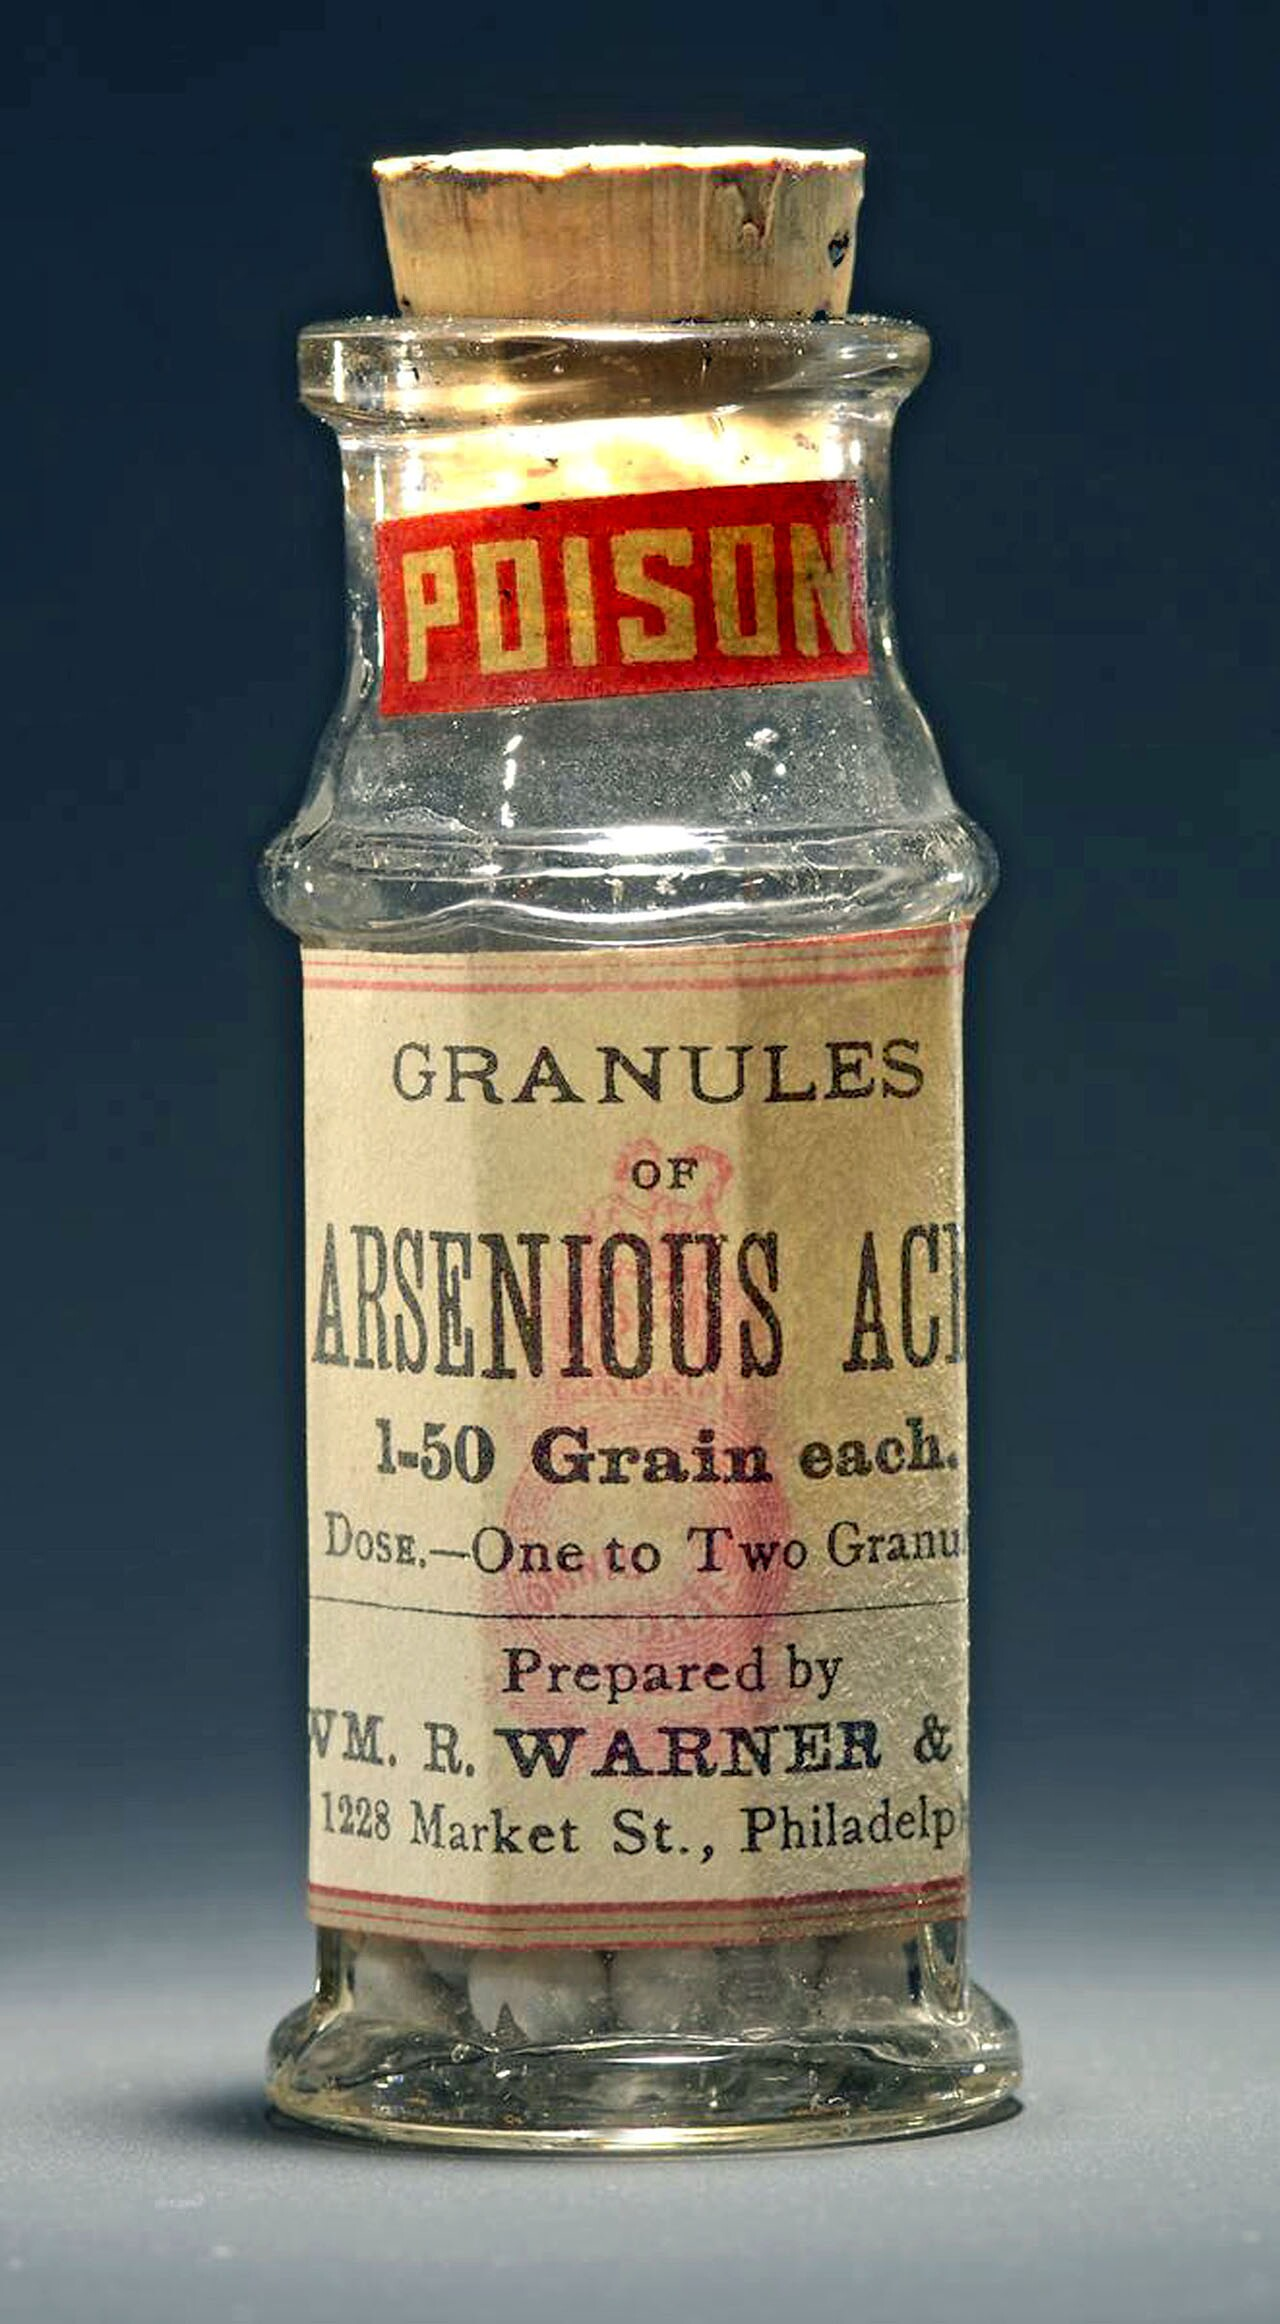 Medicinal Poison. Arsenic- and mercury-based medicines were common, typically sold over-the-counter by Los Angeles druggists. Photograph courtesy of National Museum of American History, Smithsonian Institution